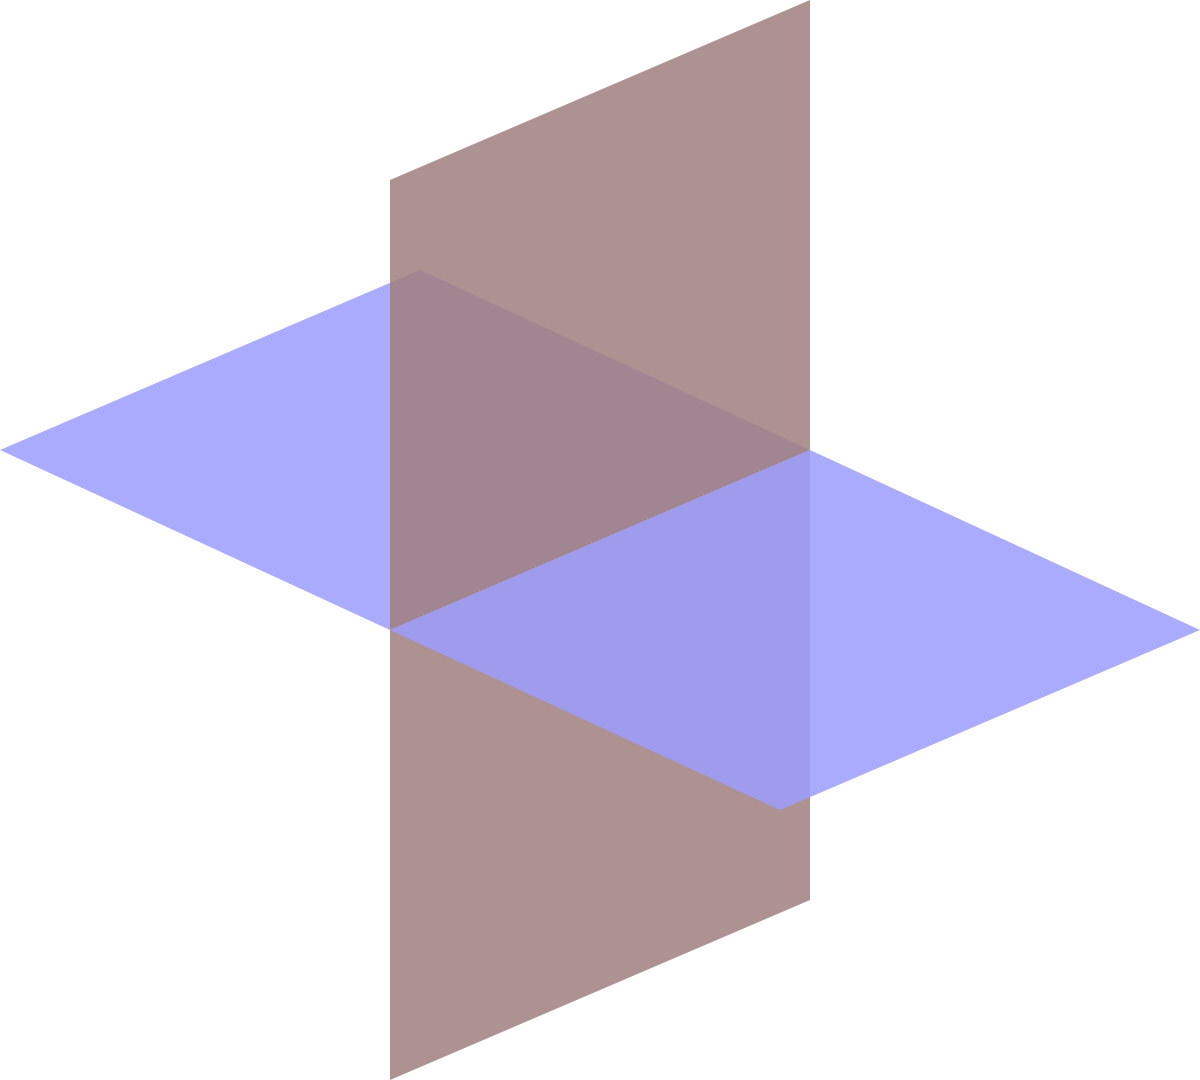 Geometrical drawing meaning. Plane geometry wikipedia